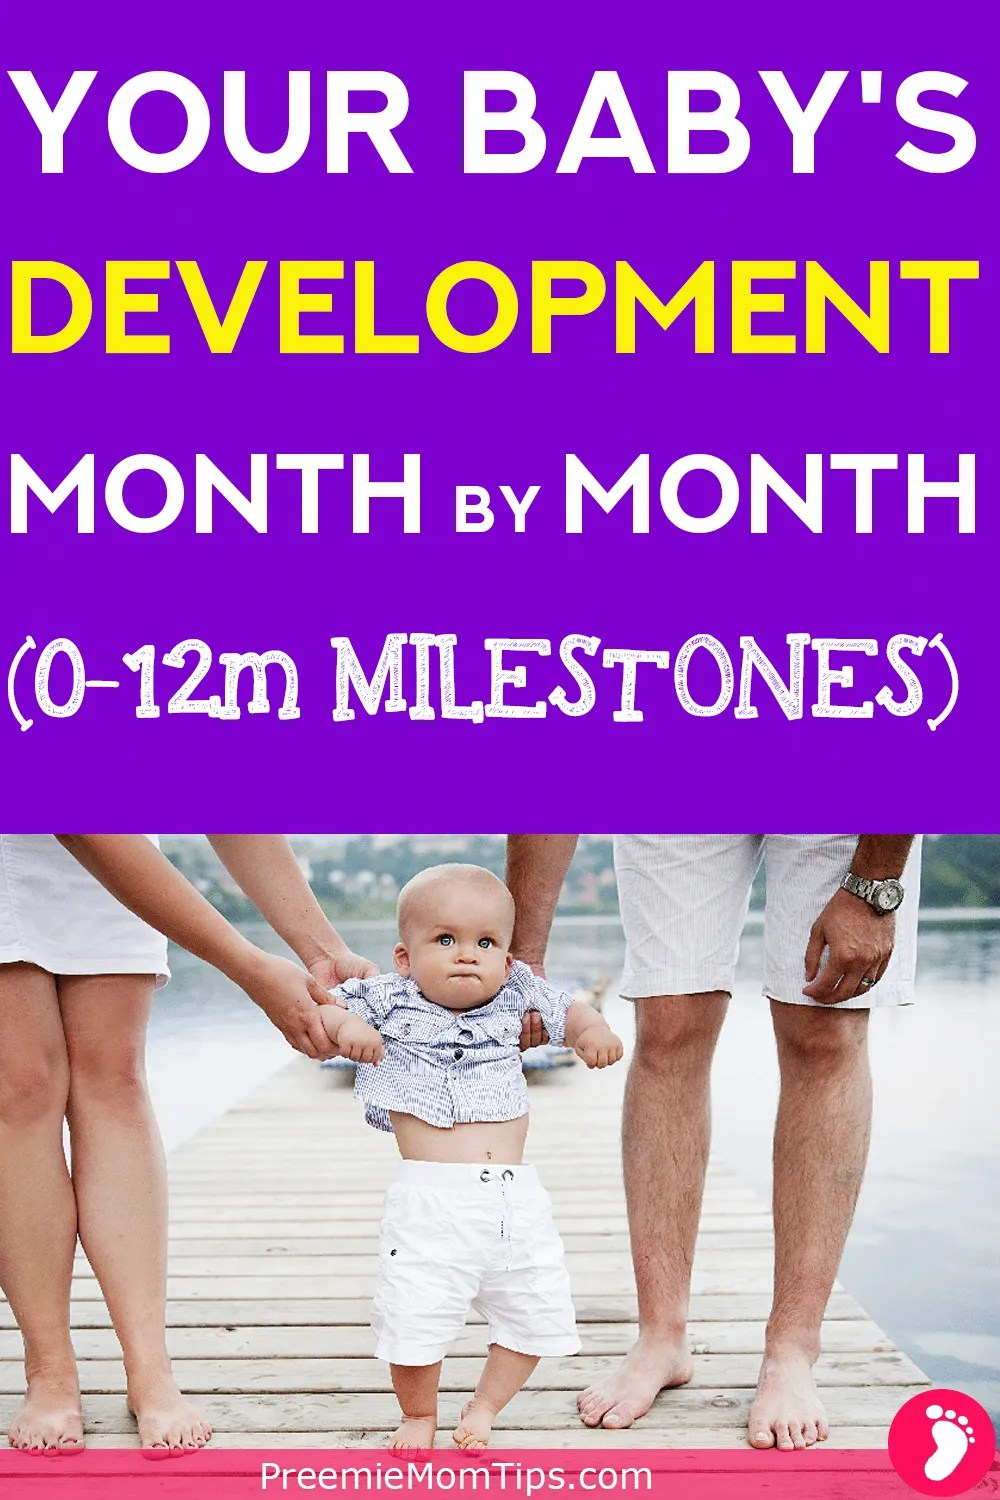 A month by month description of your baby's development and milestones! Especially made for new, caring parents! From newborns to your baby's first year. Click to find out more!